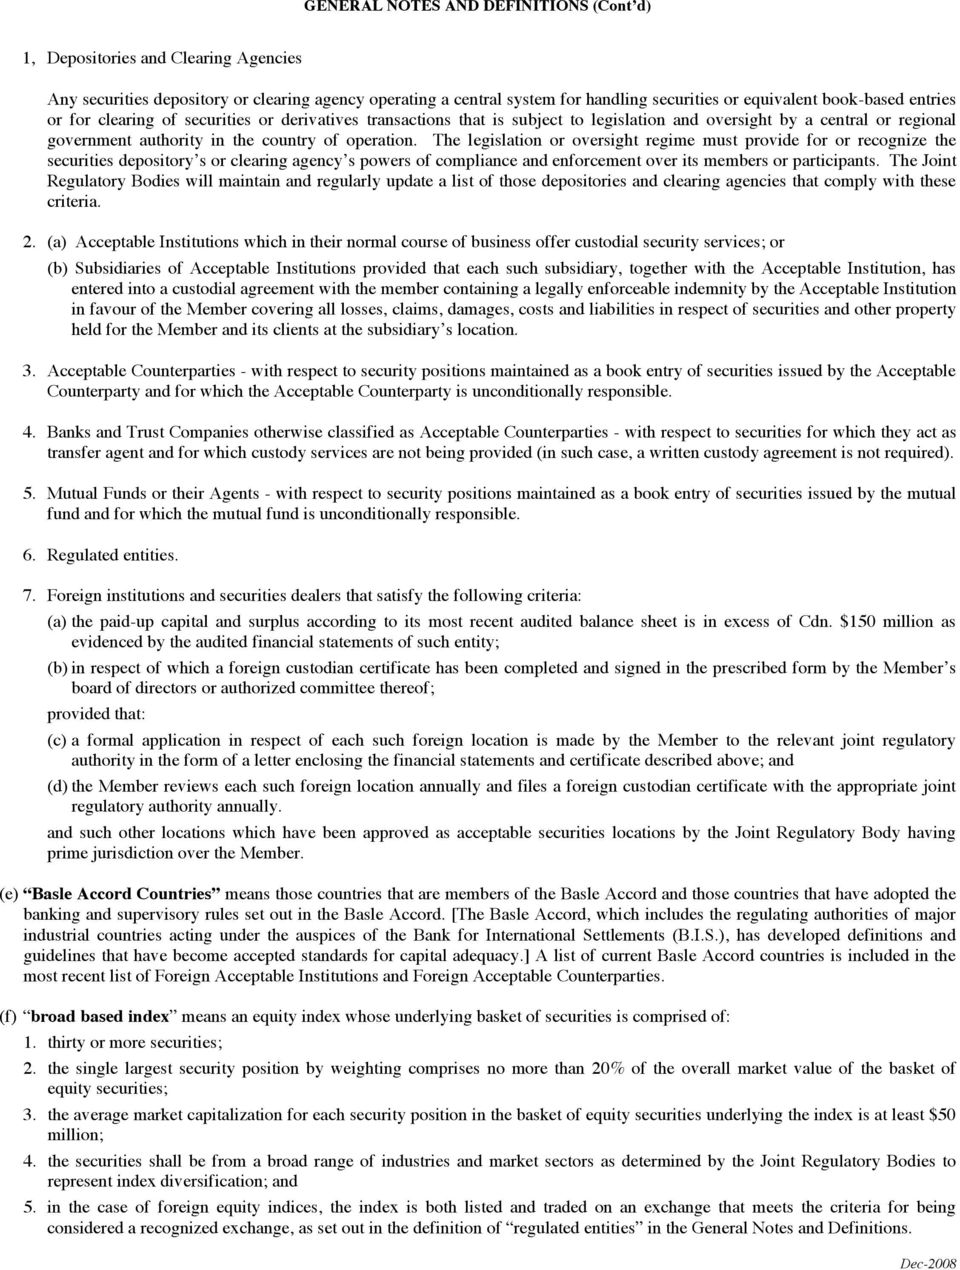 JOINT REGULATORY FINANCIAL QUESTIONNAIRE AND REPORT TABLE OF